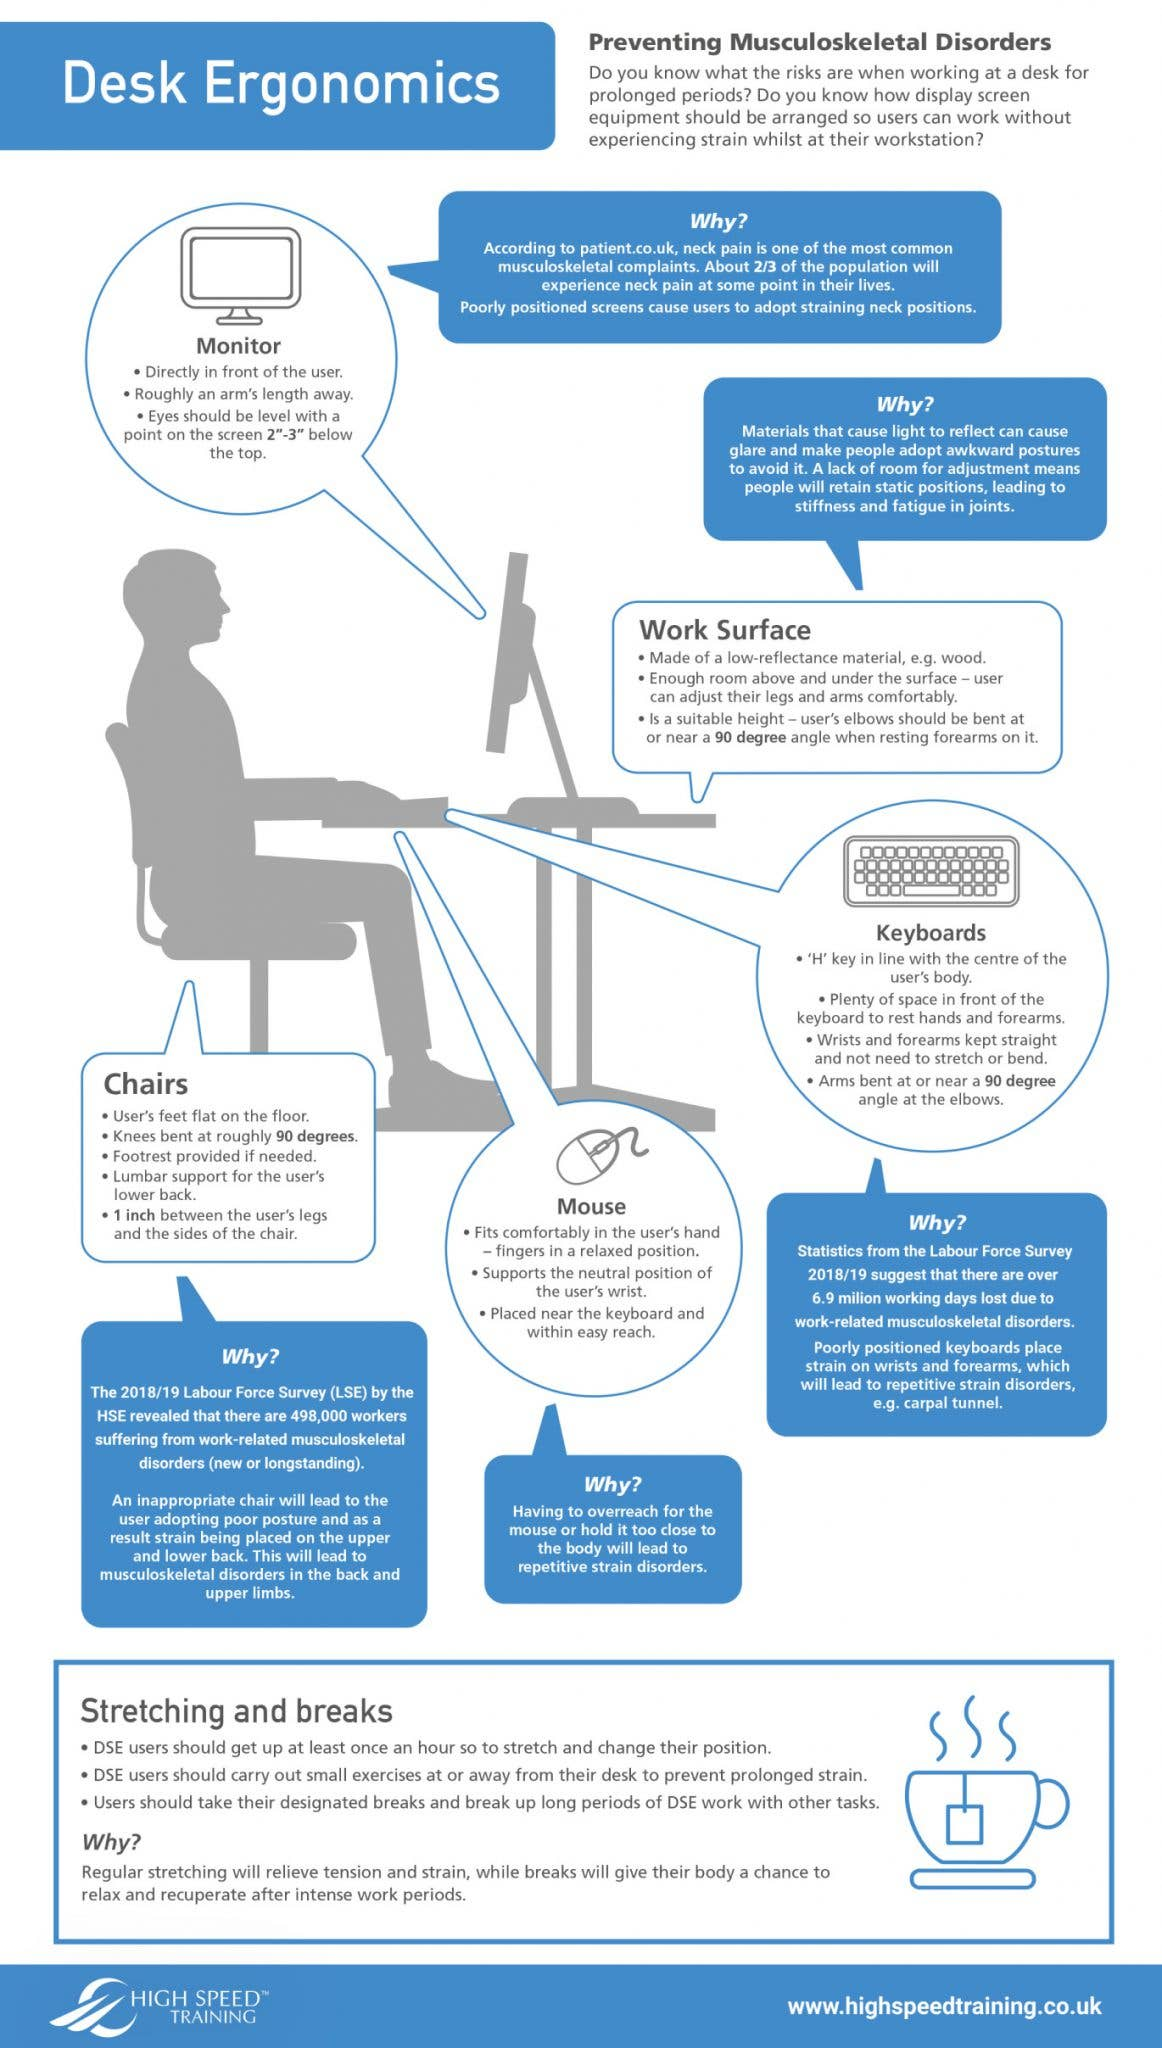 Desk Ergonomics and DSE Awareness Infographic from High Speed Training